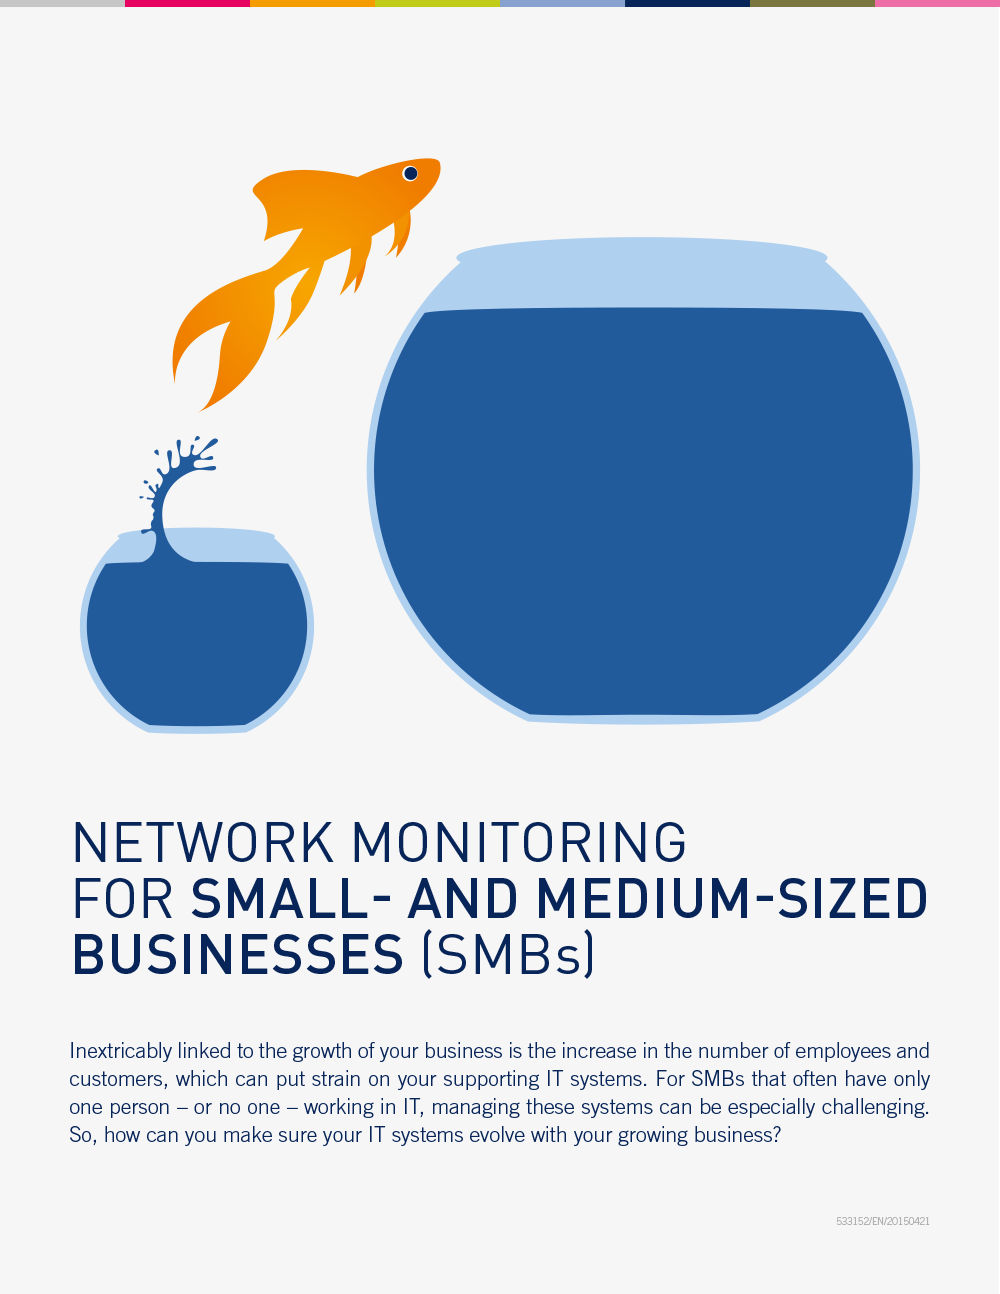 Tip Sheet Network Monitoring for Small- and Medium-Sized Businesses (SMBs)